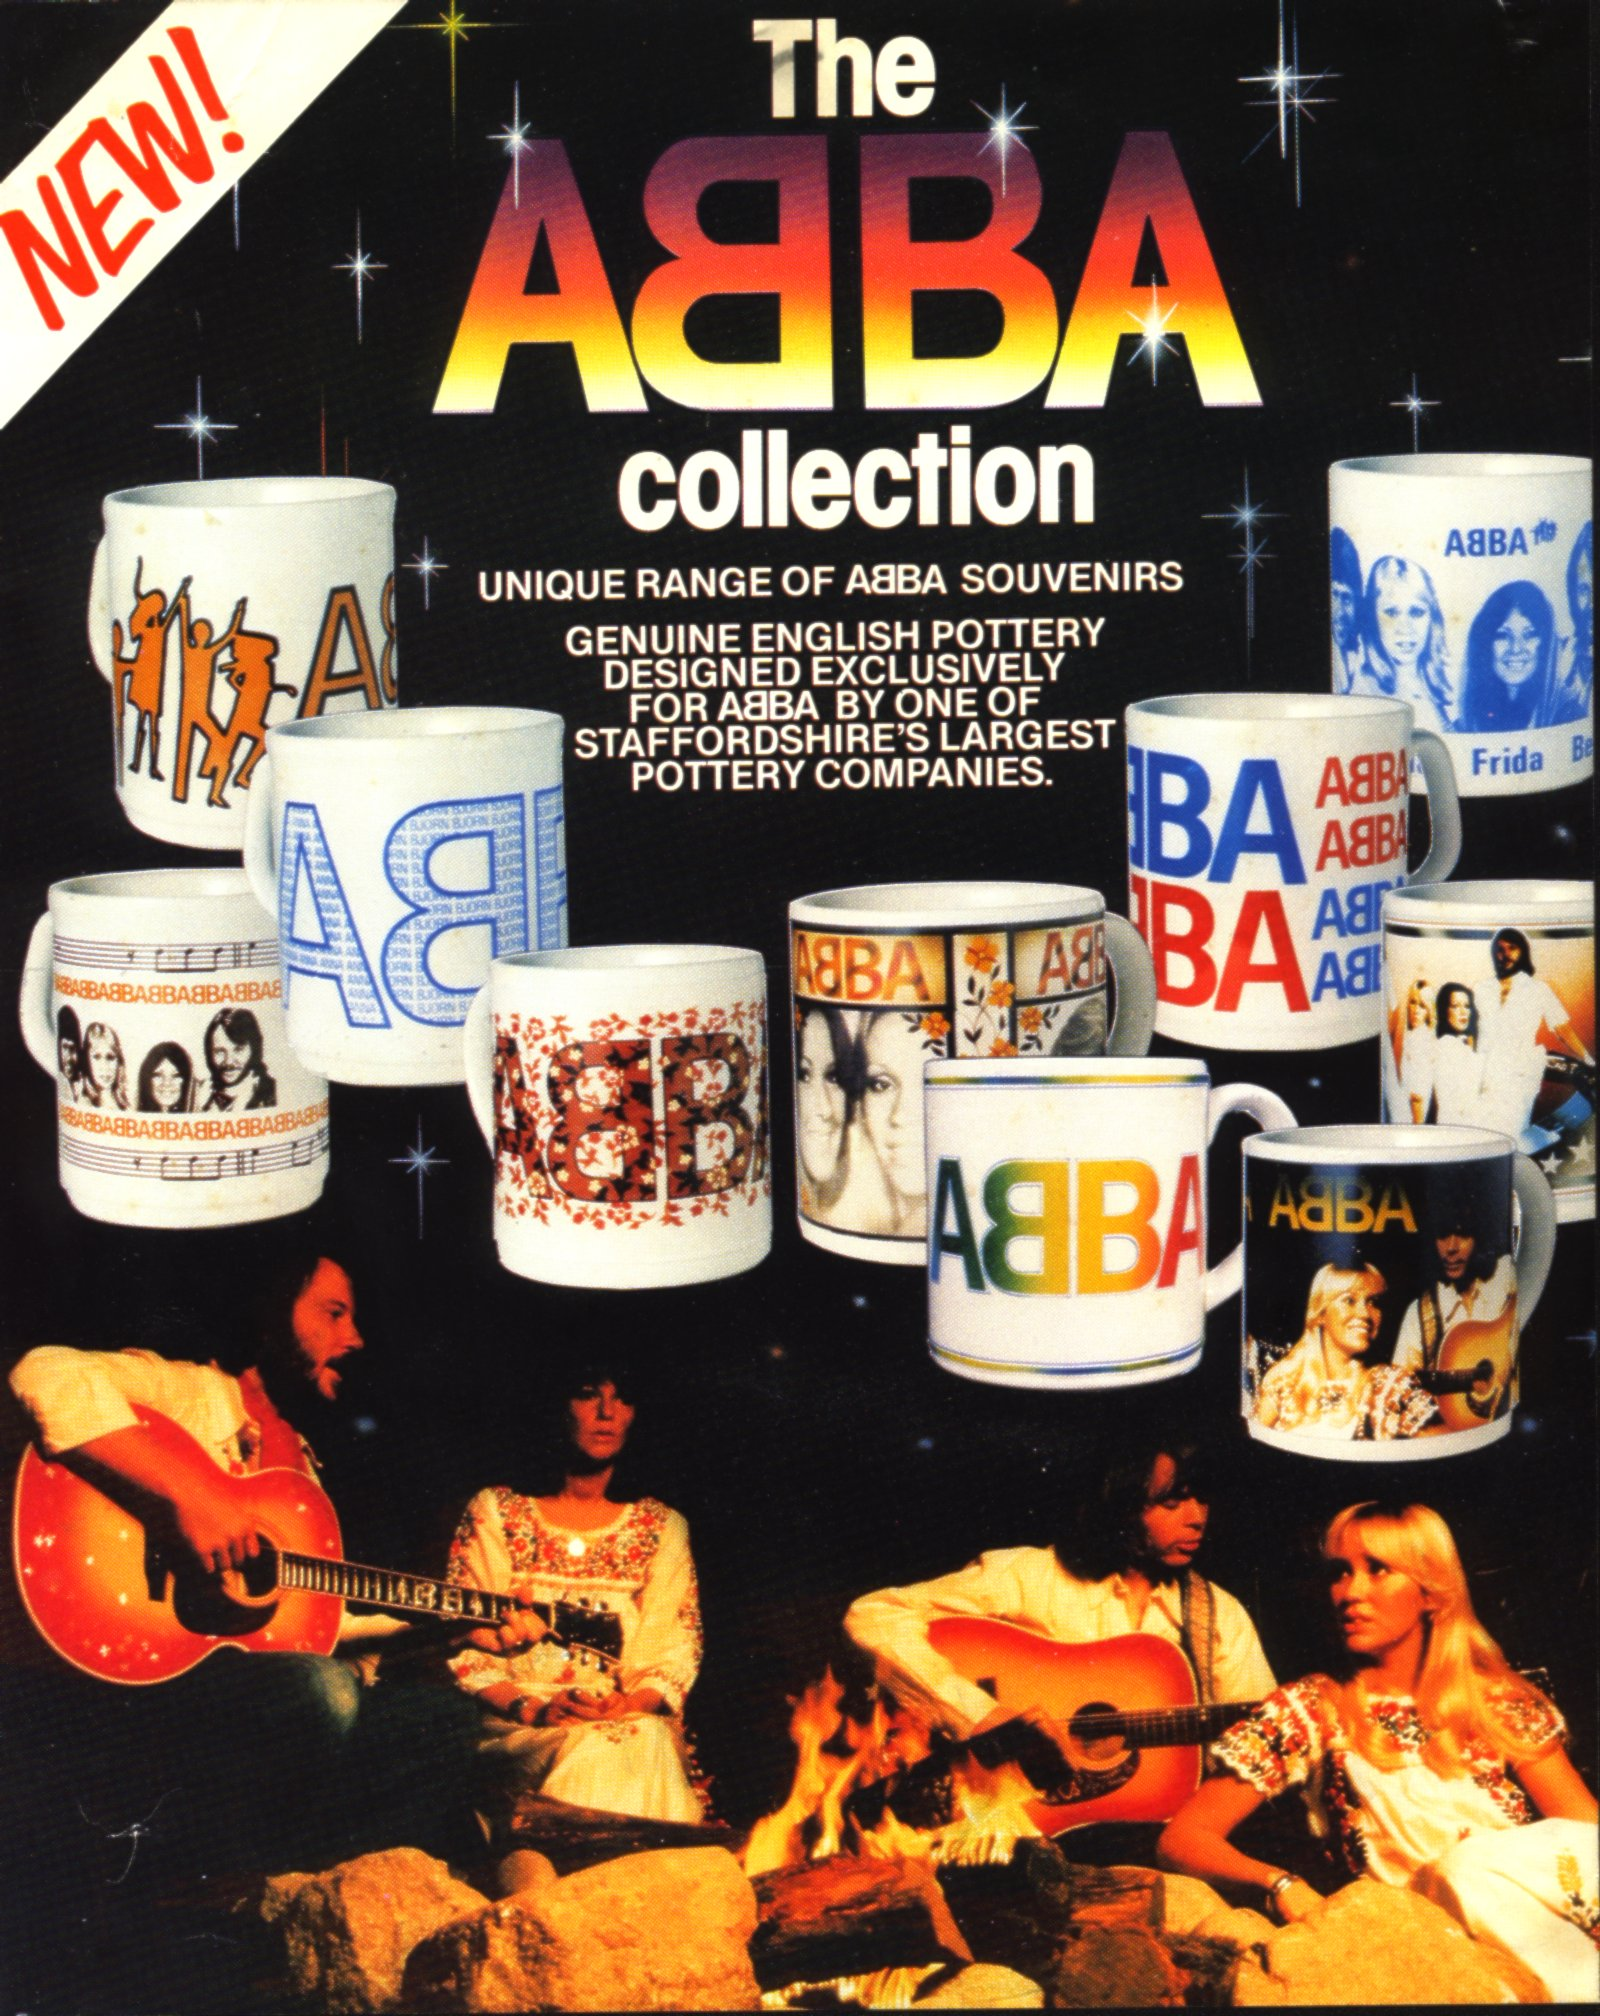 abba mug collection front page